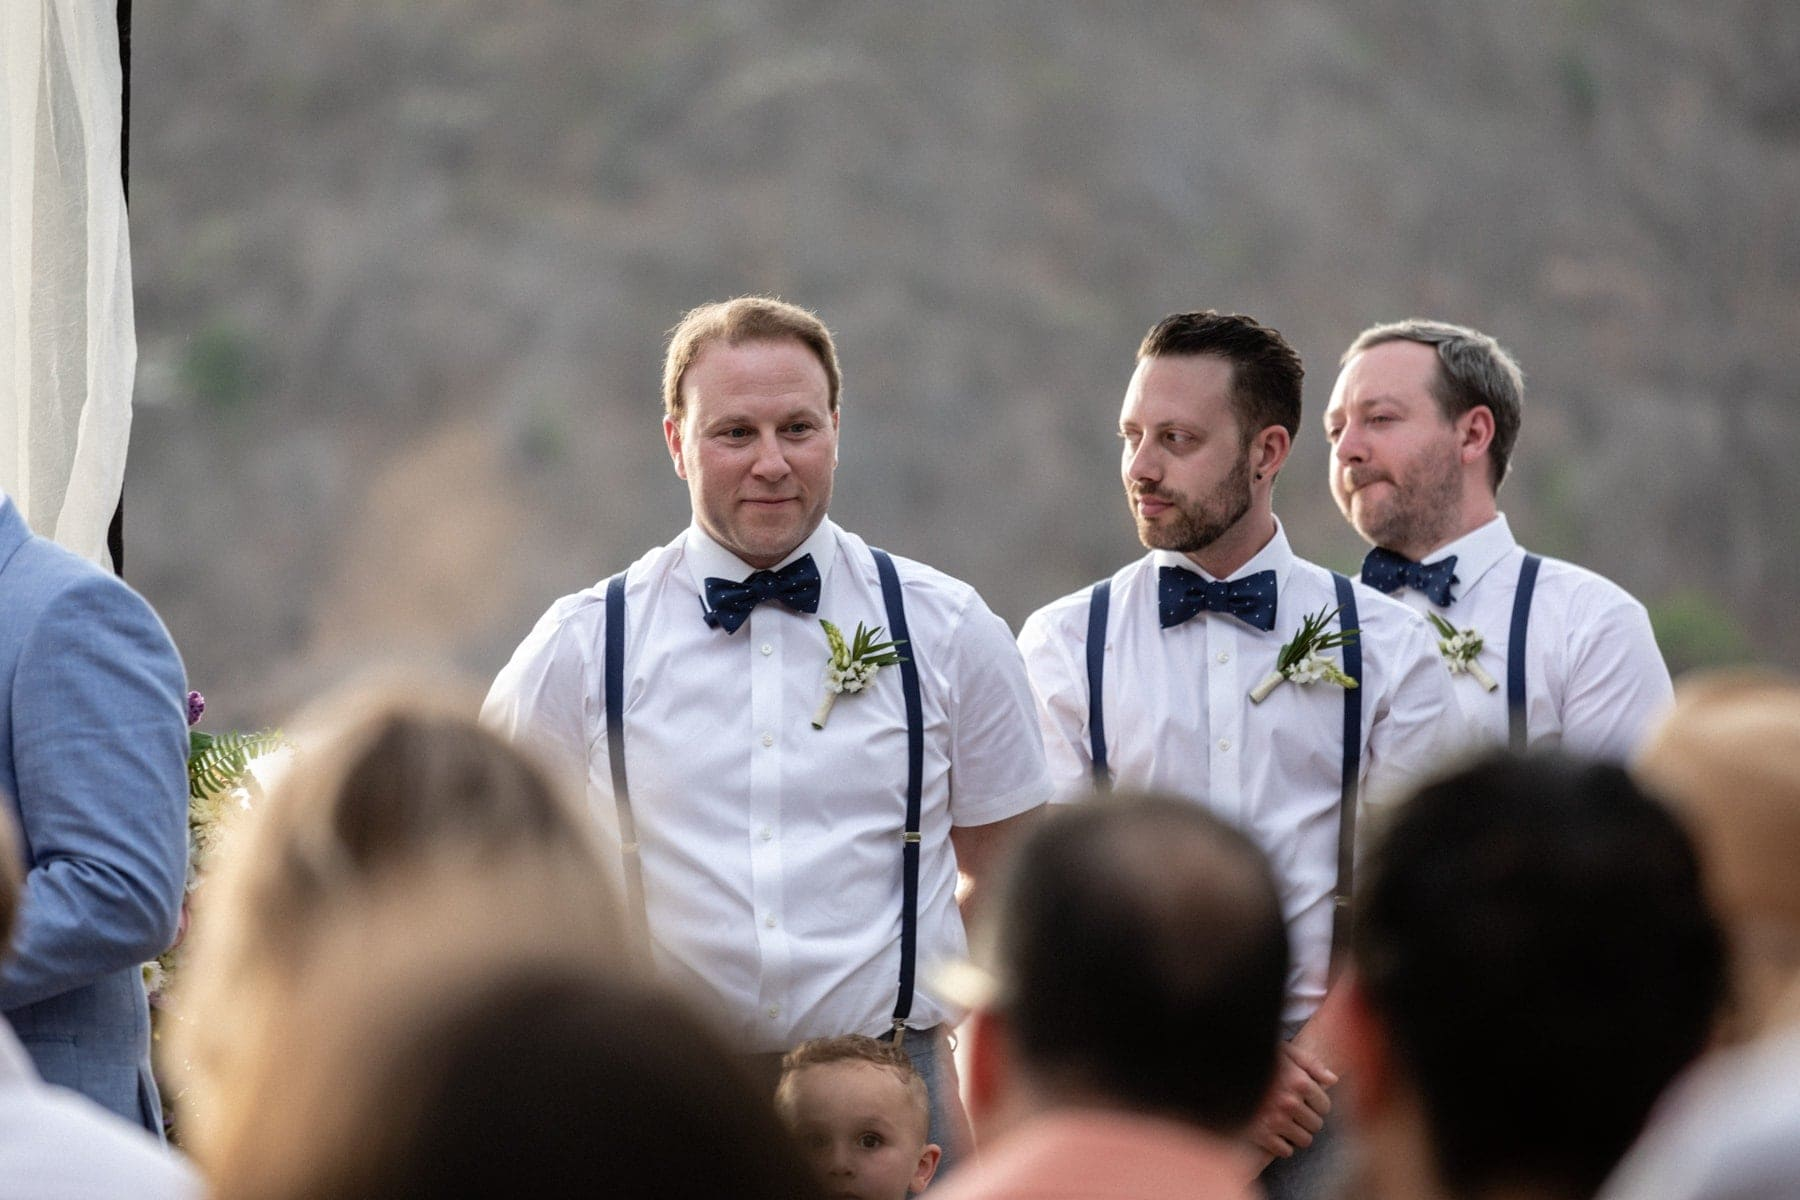 We removed the sunblock and tan line so he wouldn't stick out from the other groomsmen. Sunblock's far easier!